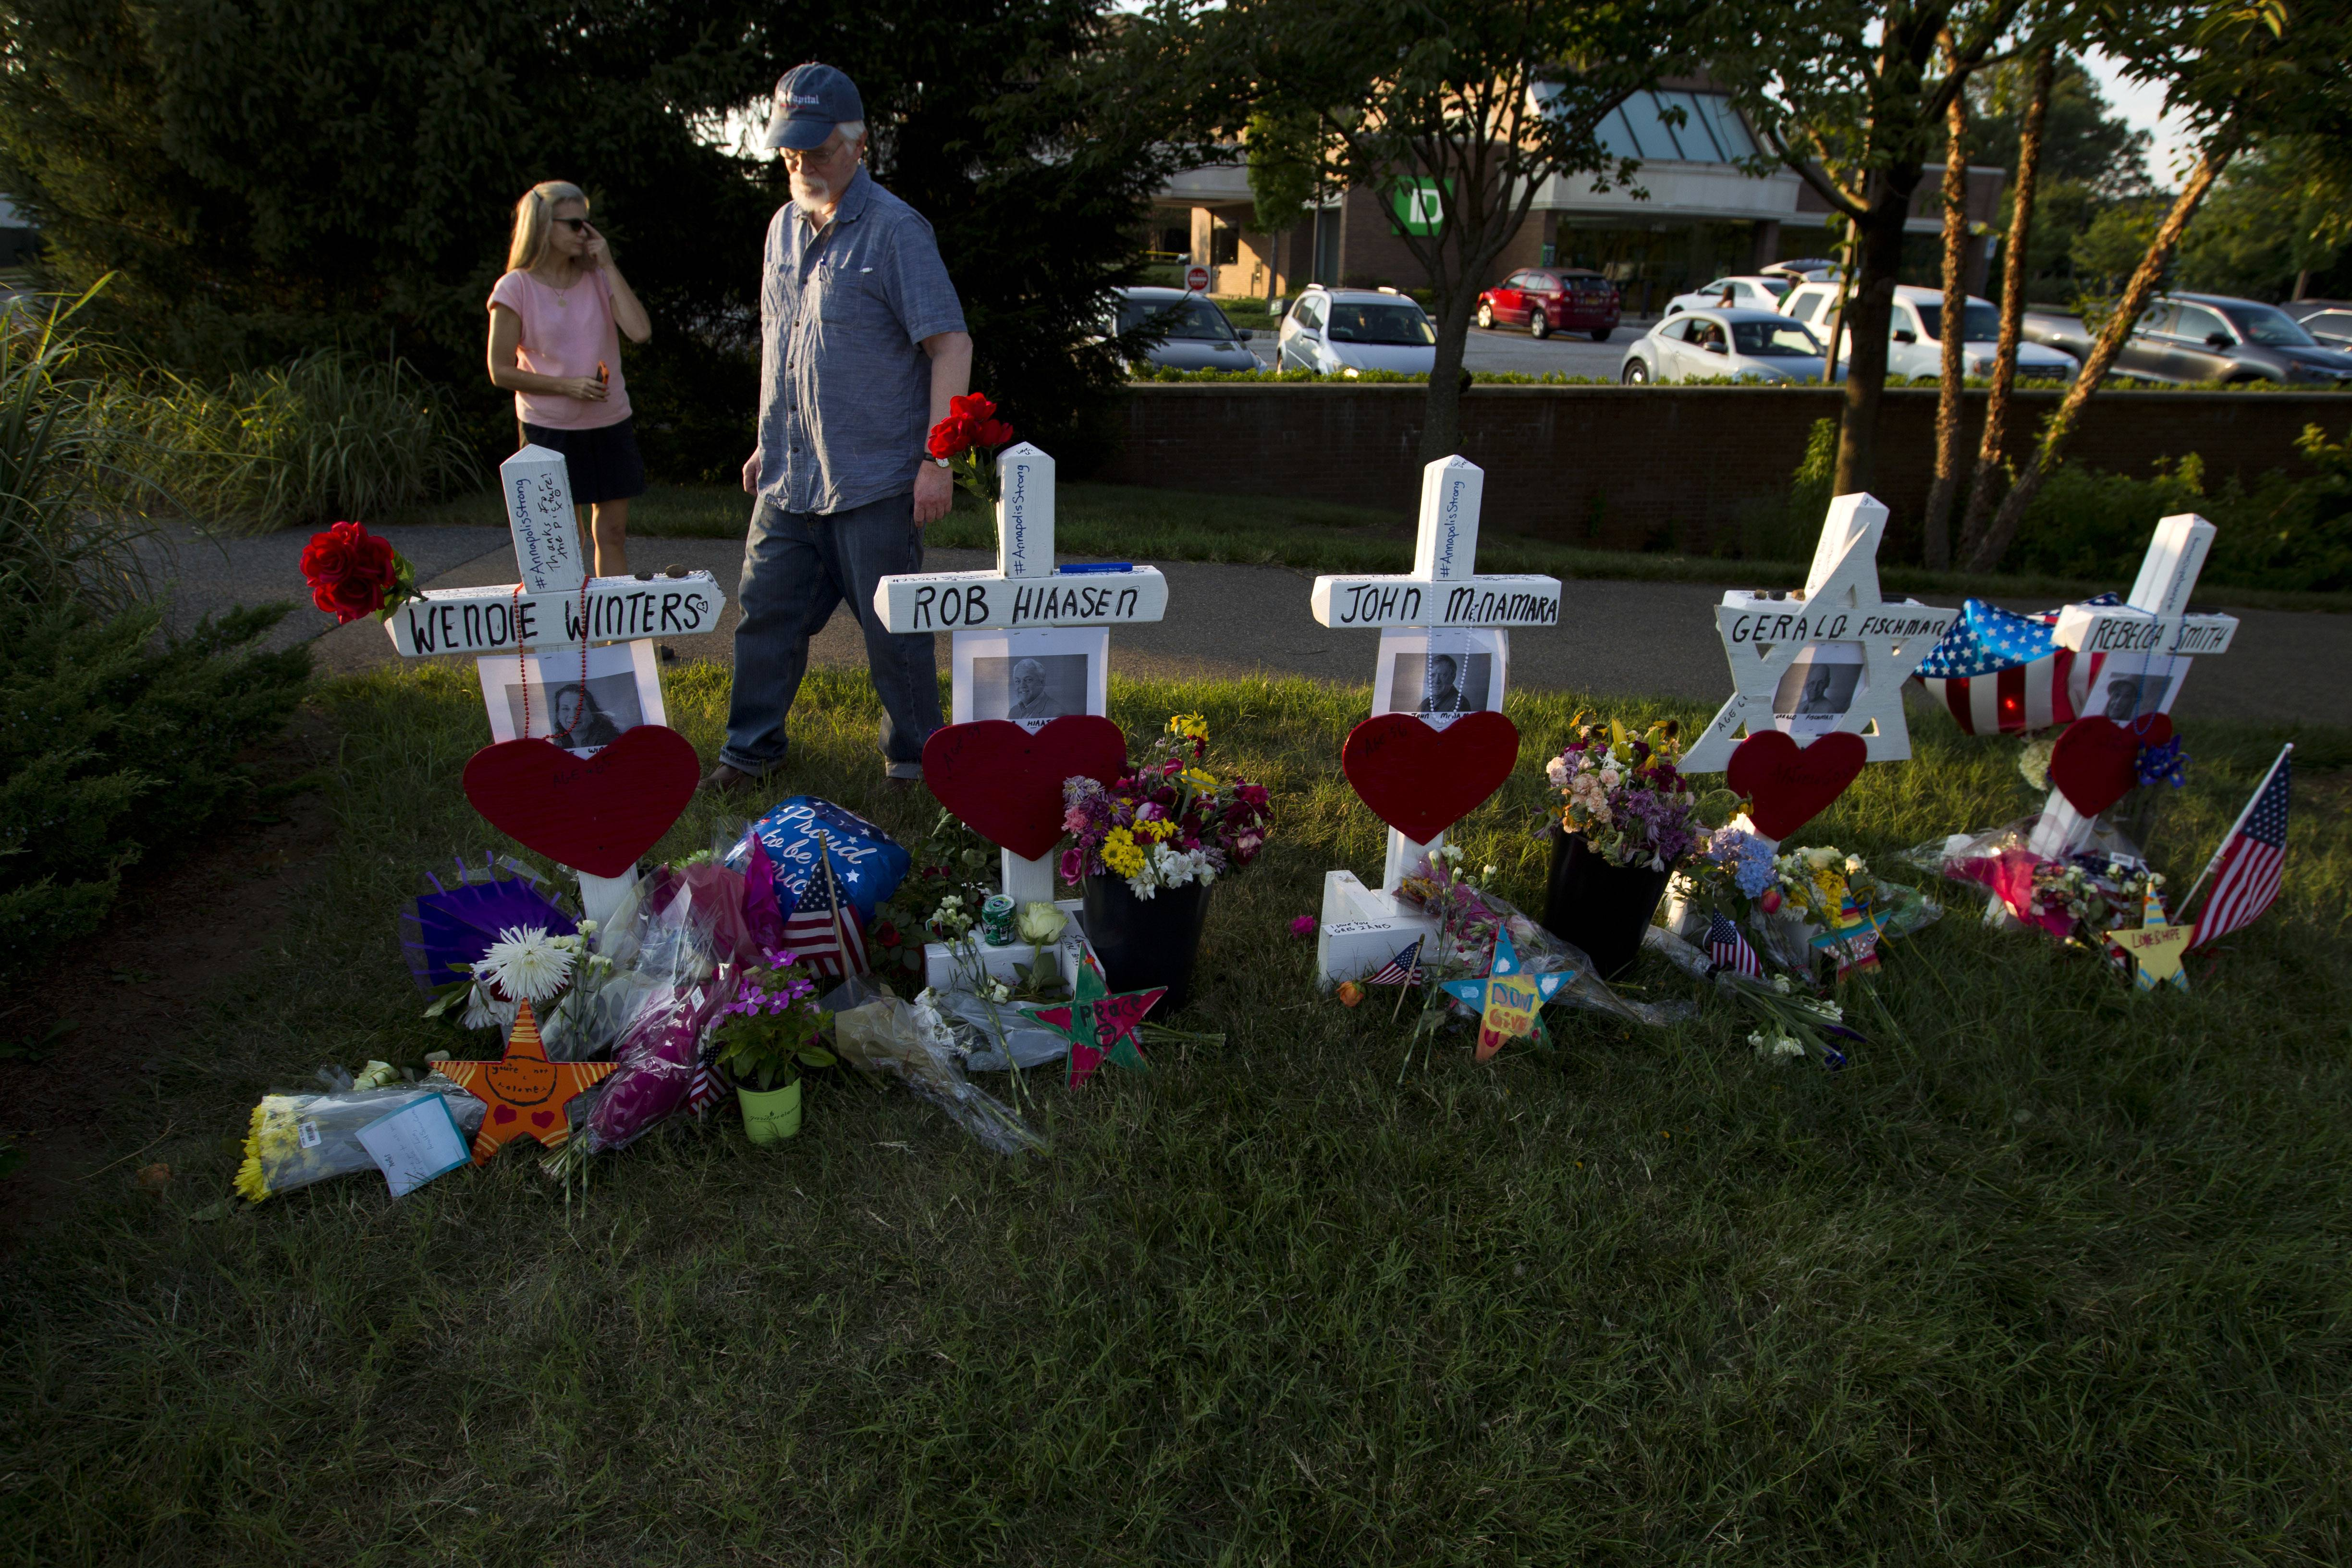 Capital Gazette reporter E.B. Furgurson III looks at crosses and a Star of David representing his five colleagues at a makeshift memorial outside the office building housing The Capital Gazette newspaper in Annapolis, Maryland.